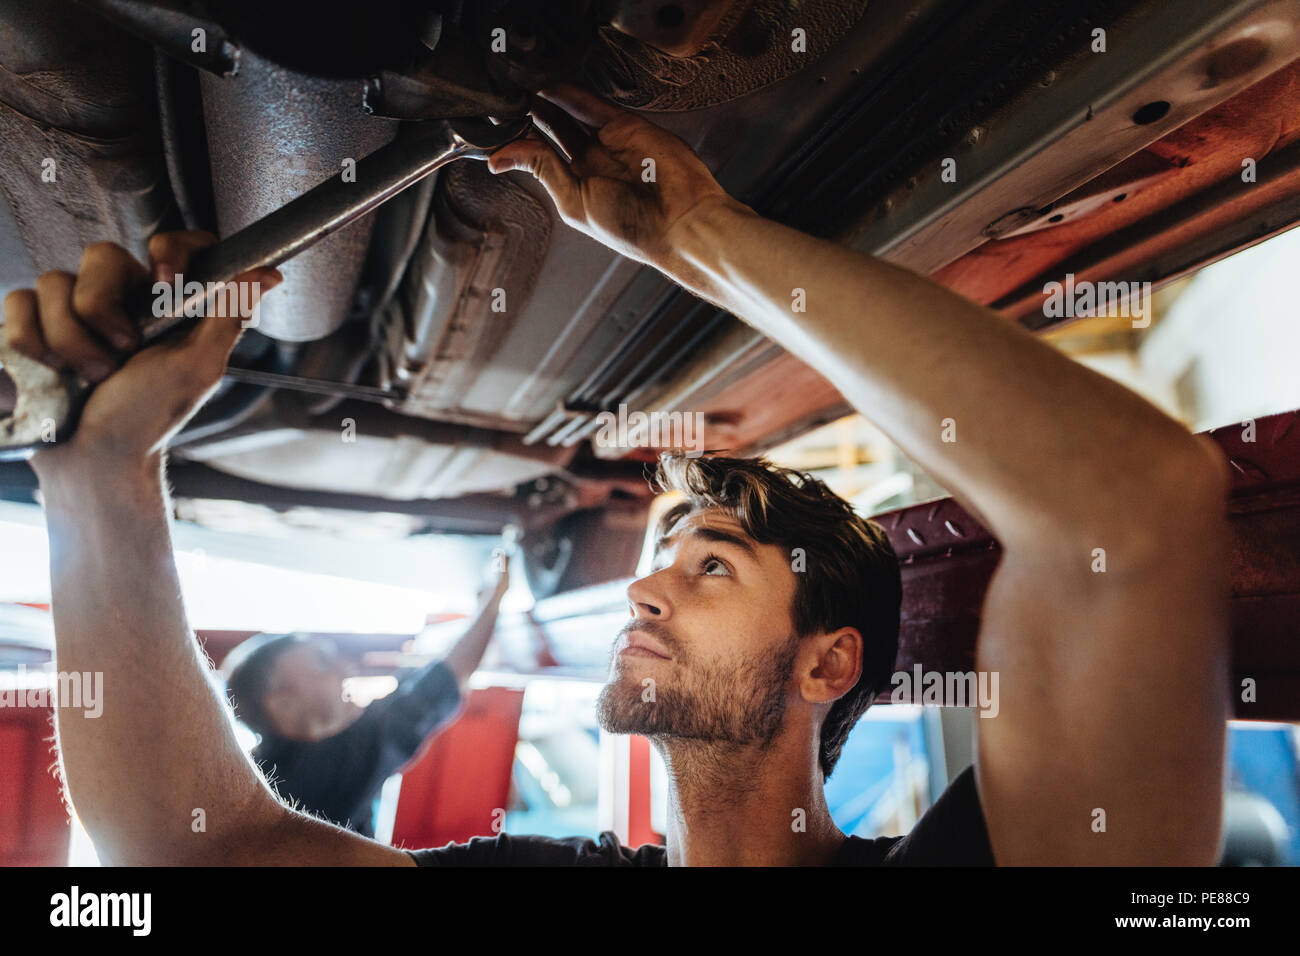 Young man working underneath a lifted car. Mechanic tightening a car part with spanner in automobile service center. - Stock Image